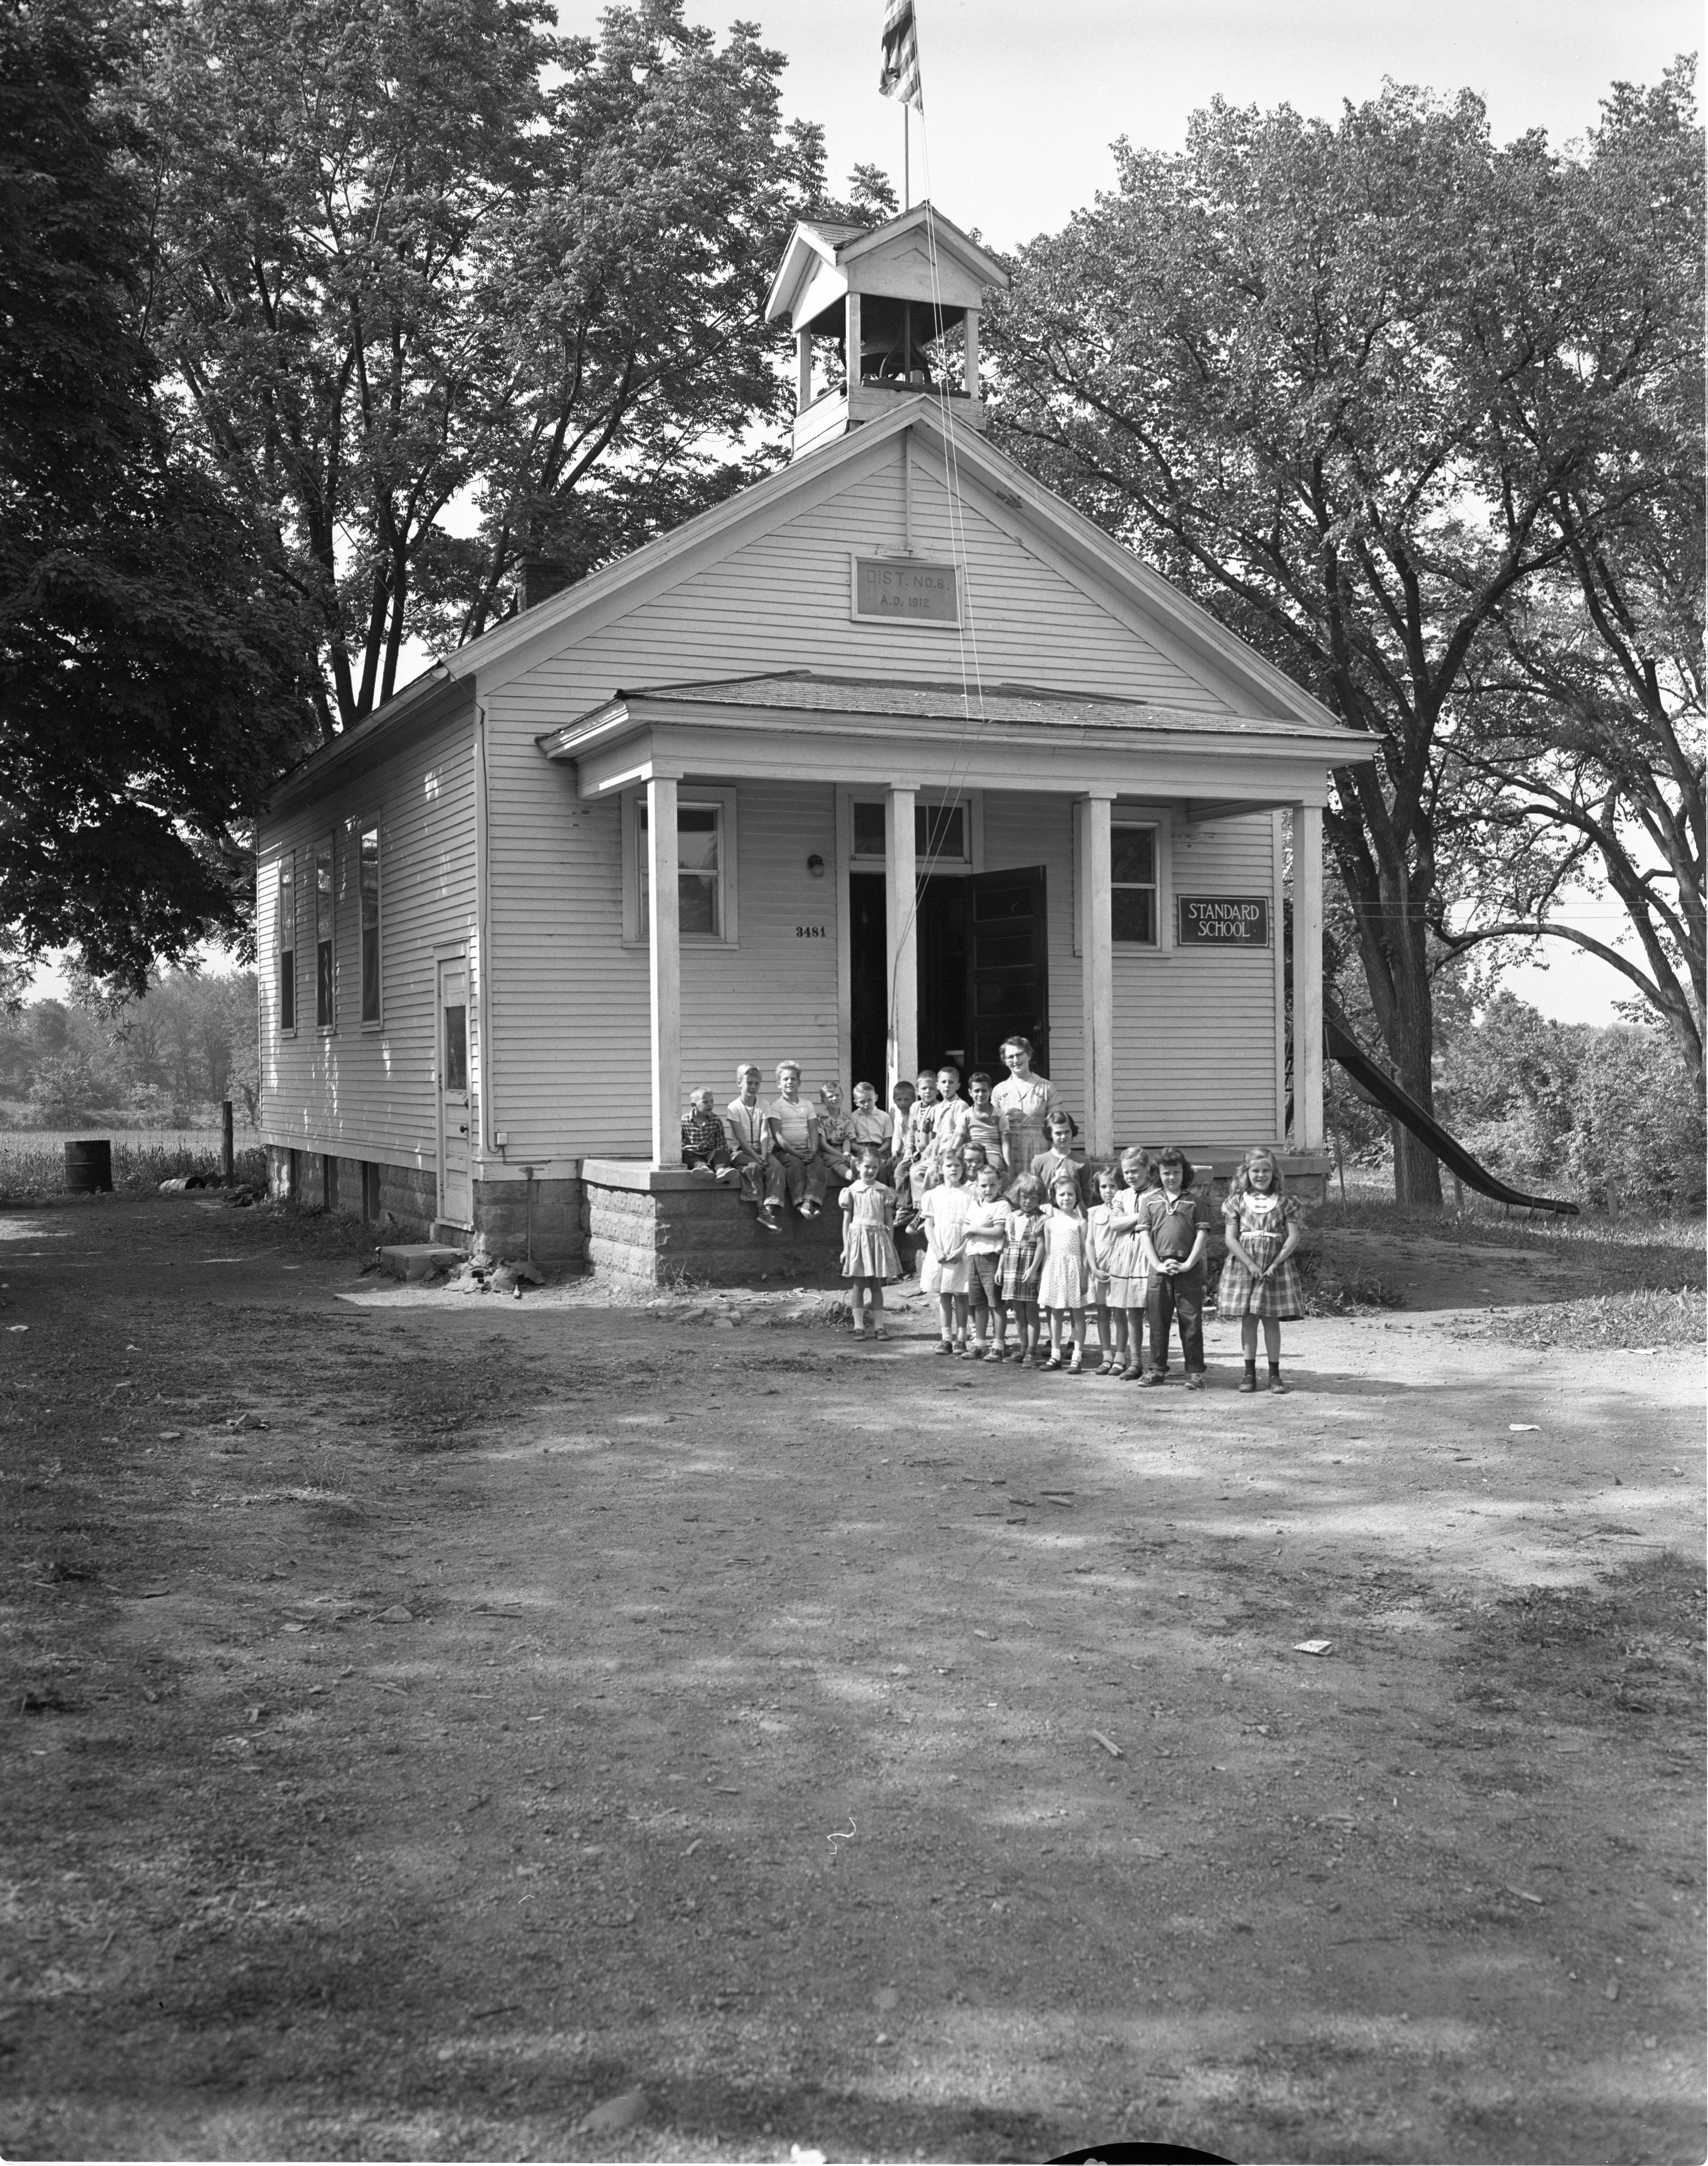 Image from Dold School, June 1957